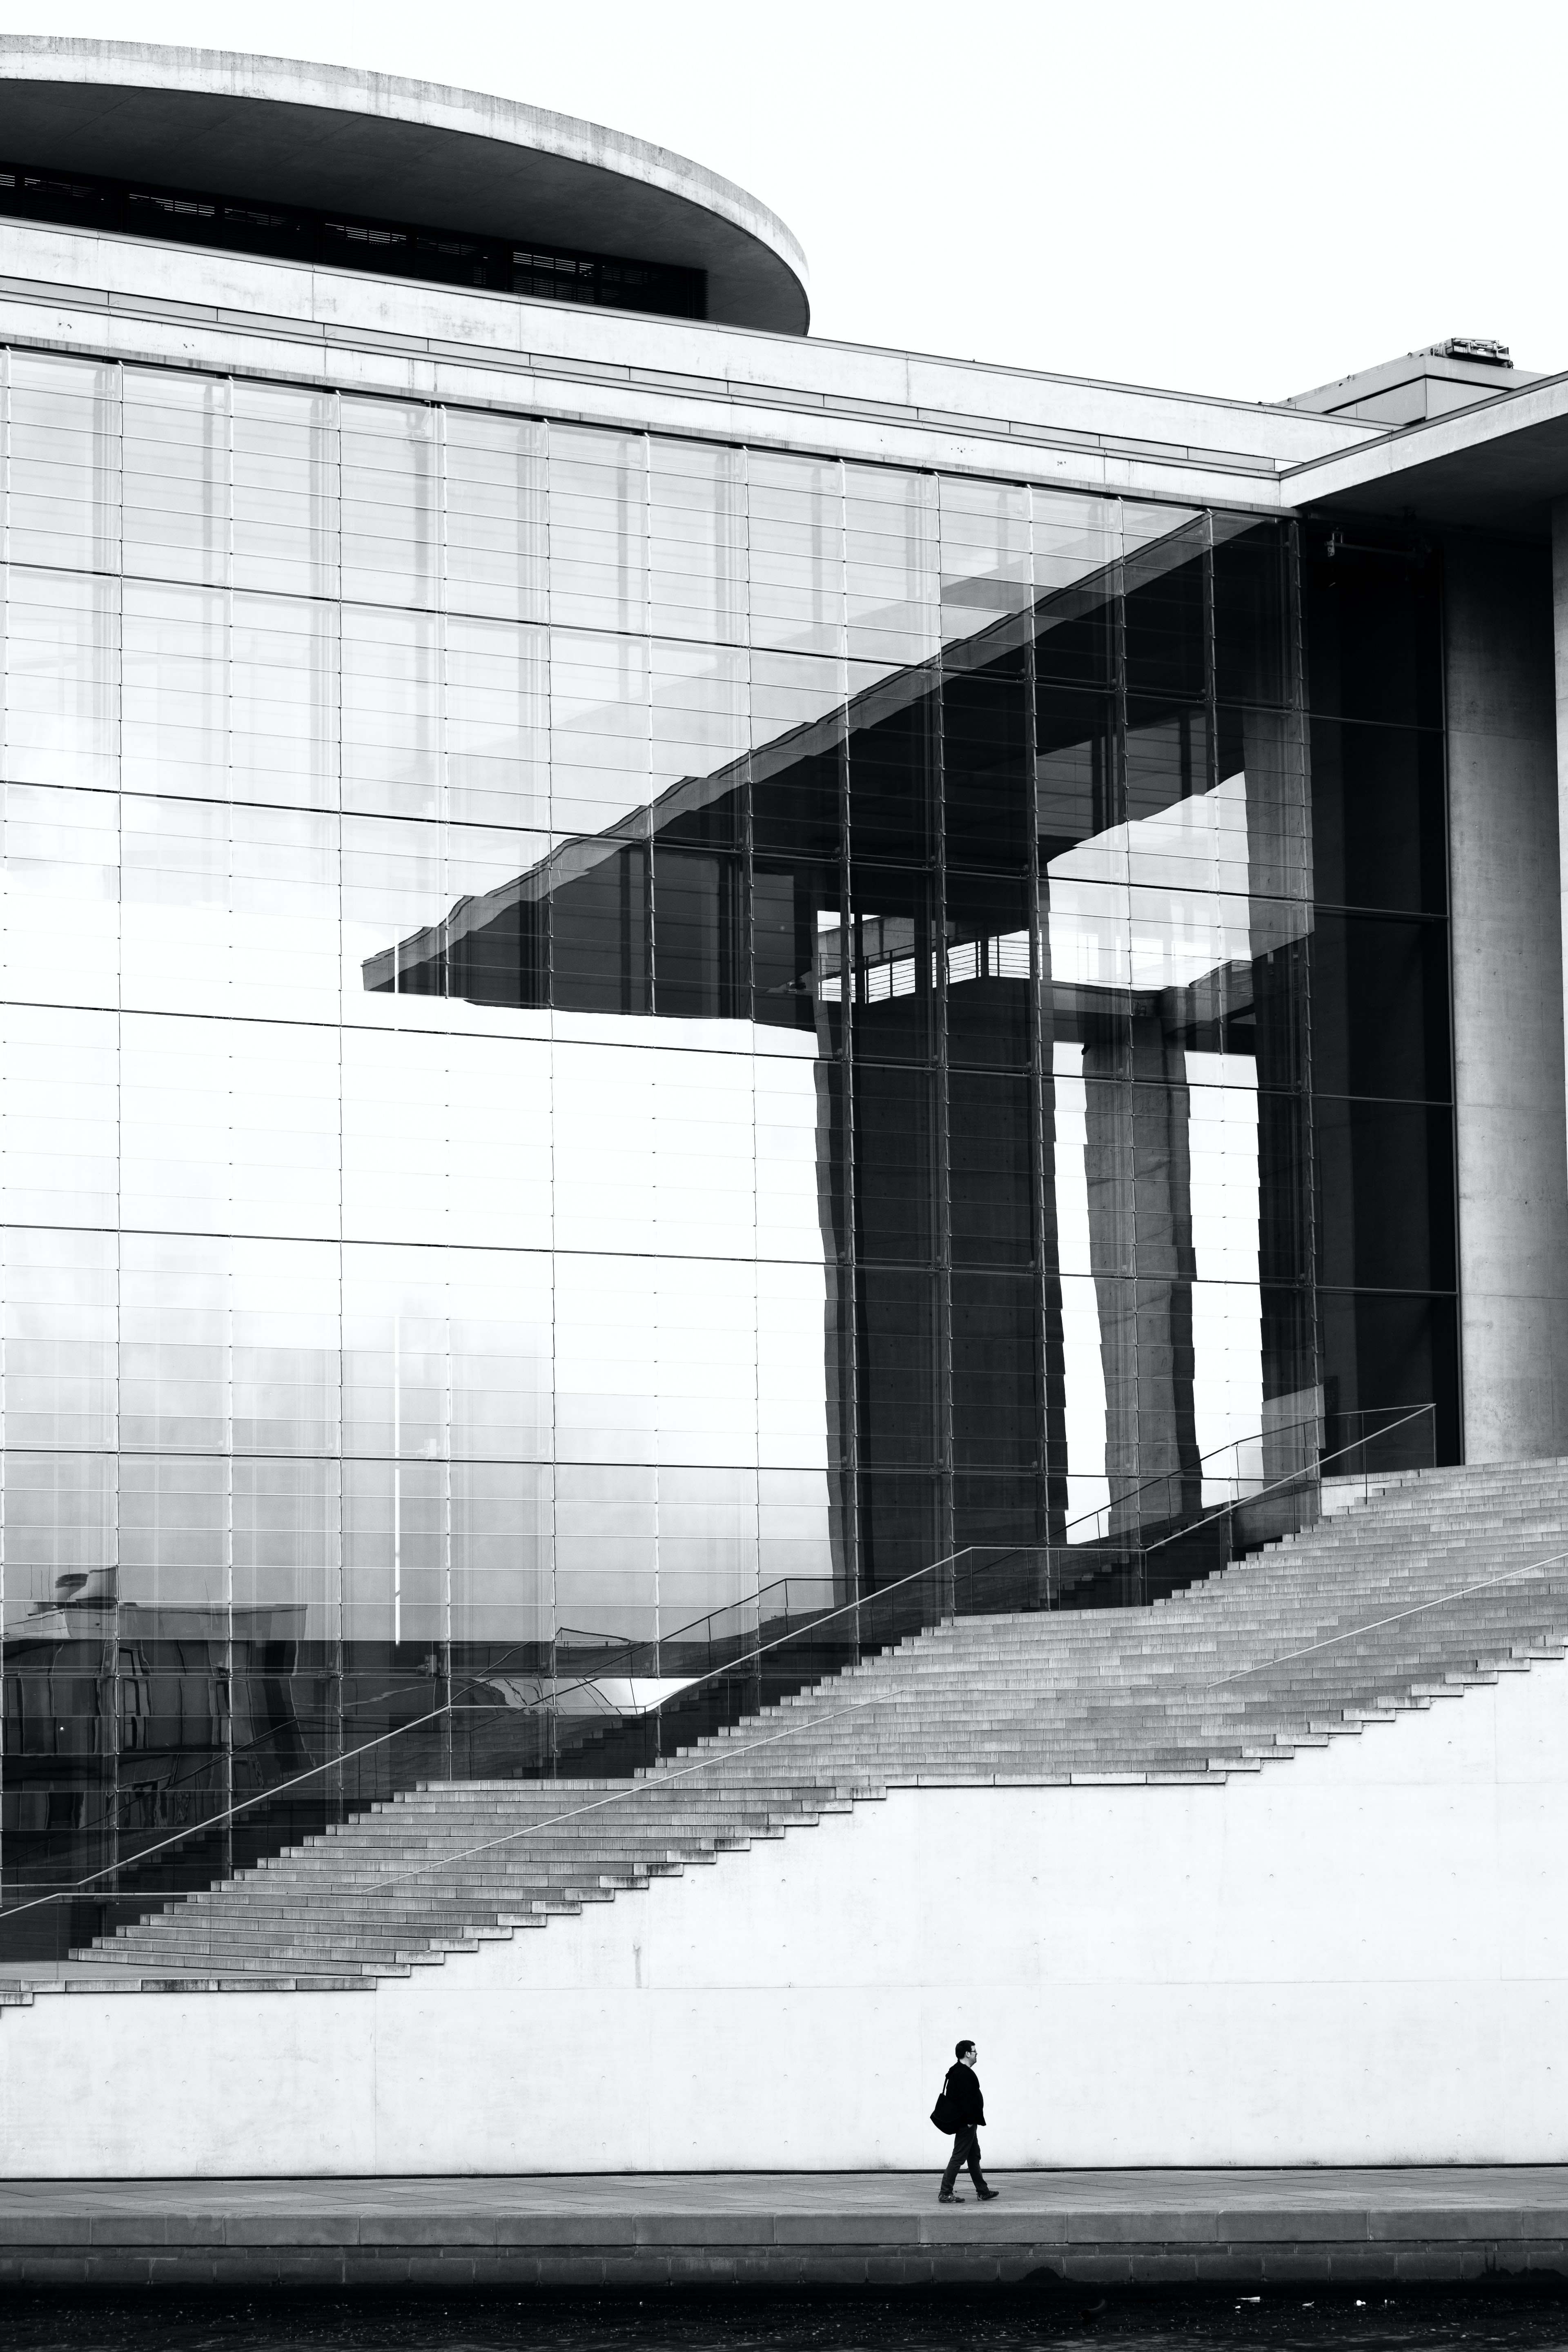 A man strolling along a large staircase at the entrance of a building